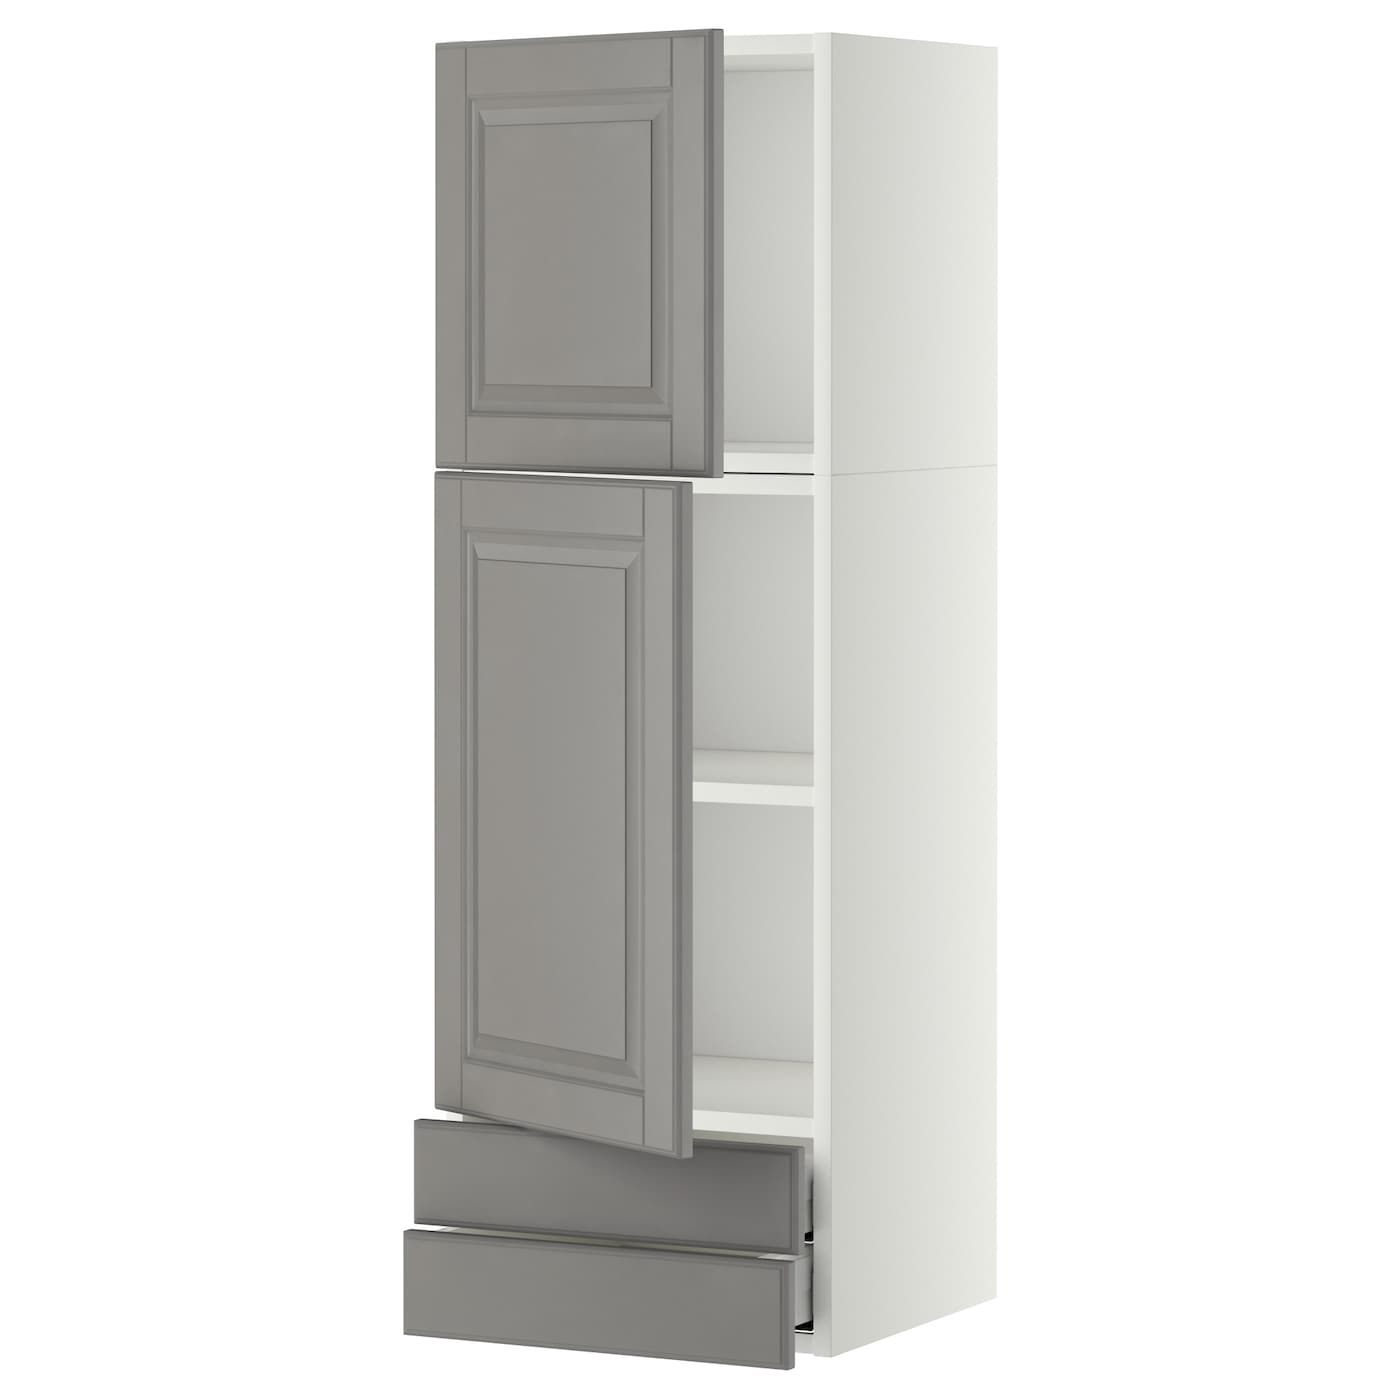 metod maximera wall cabinet w 2 doors 2 drawers white bodbyn grey 40x120 cm ikea. Black Bedroom Furniture Sets. Home Design Ideas